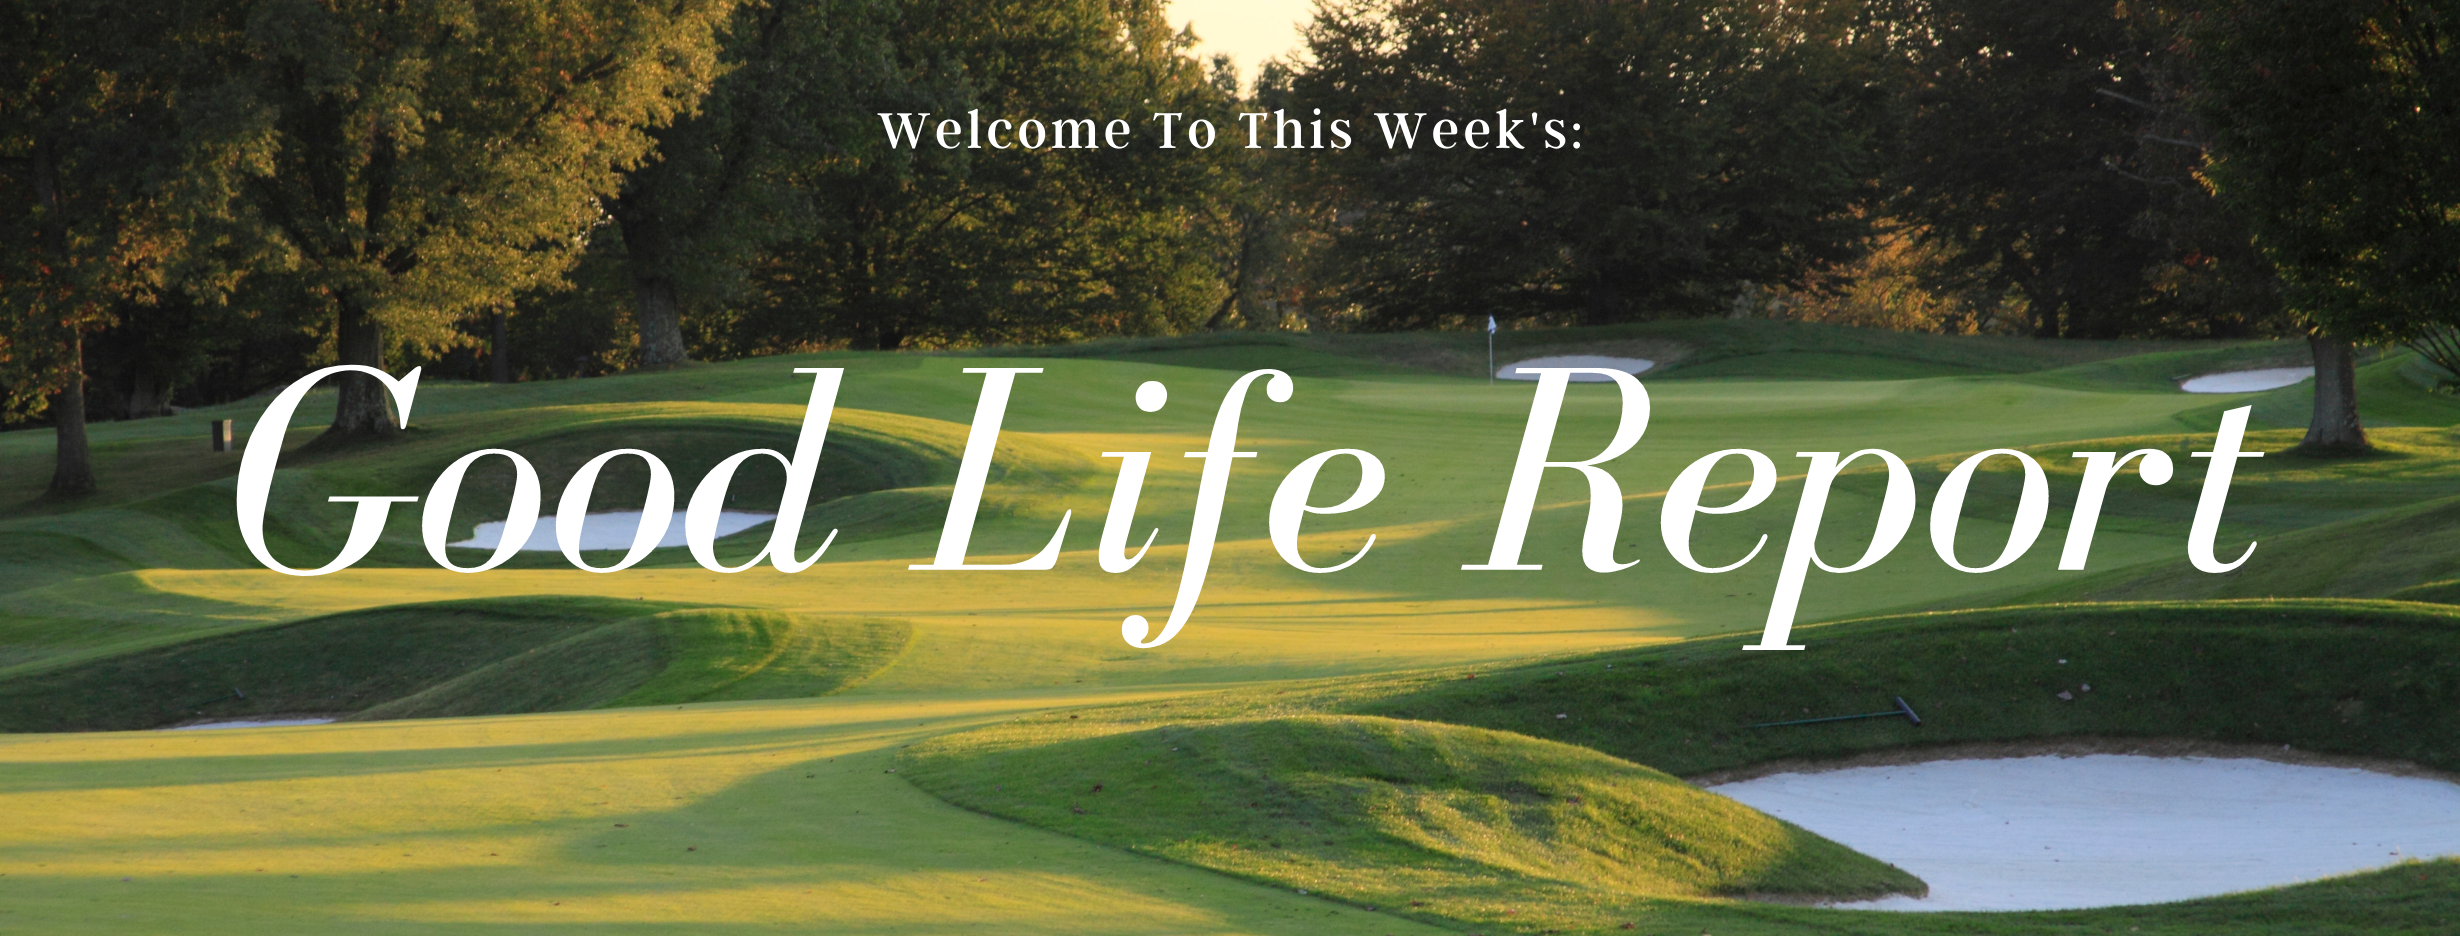 The Good Life Report - Golf Tips & End-Of-Summer Recipe Thumbnail